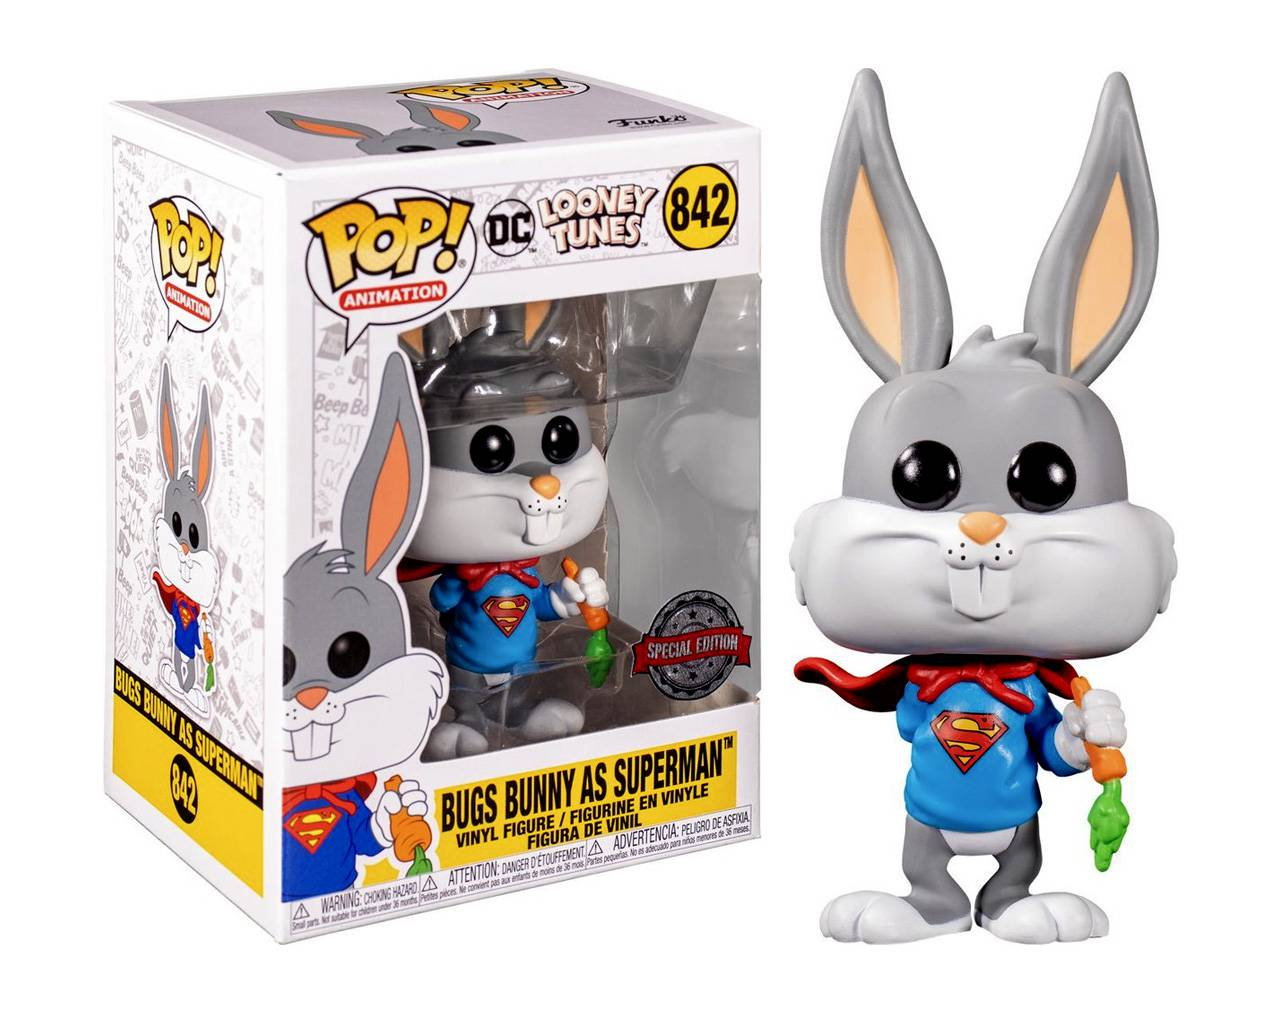 Bugs Bunny (Superman) Pop! Vinyl